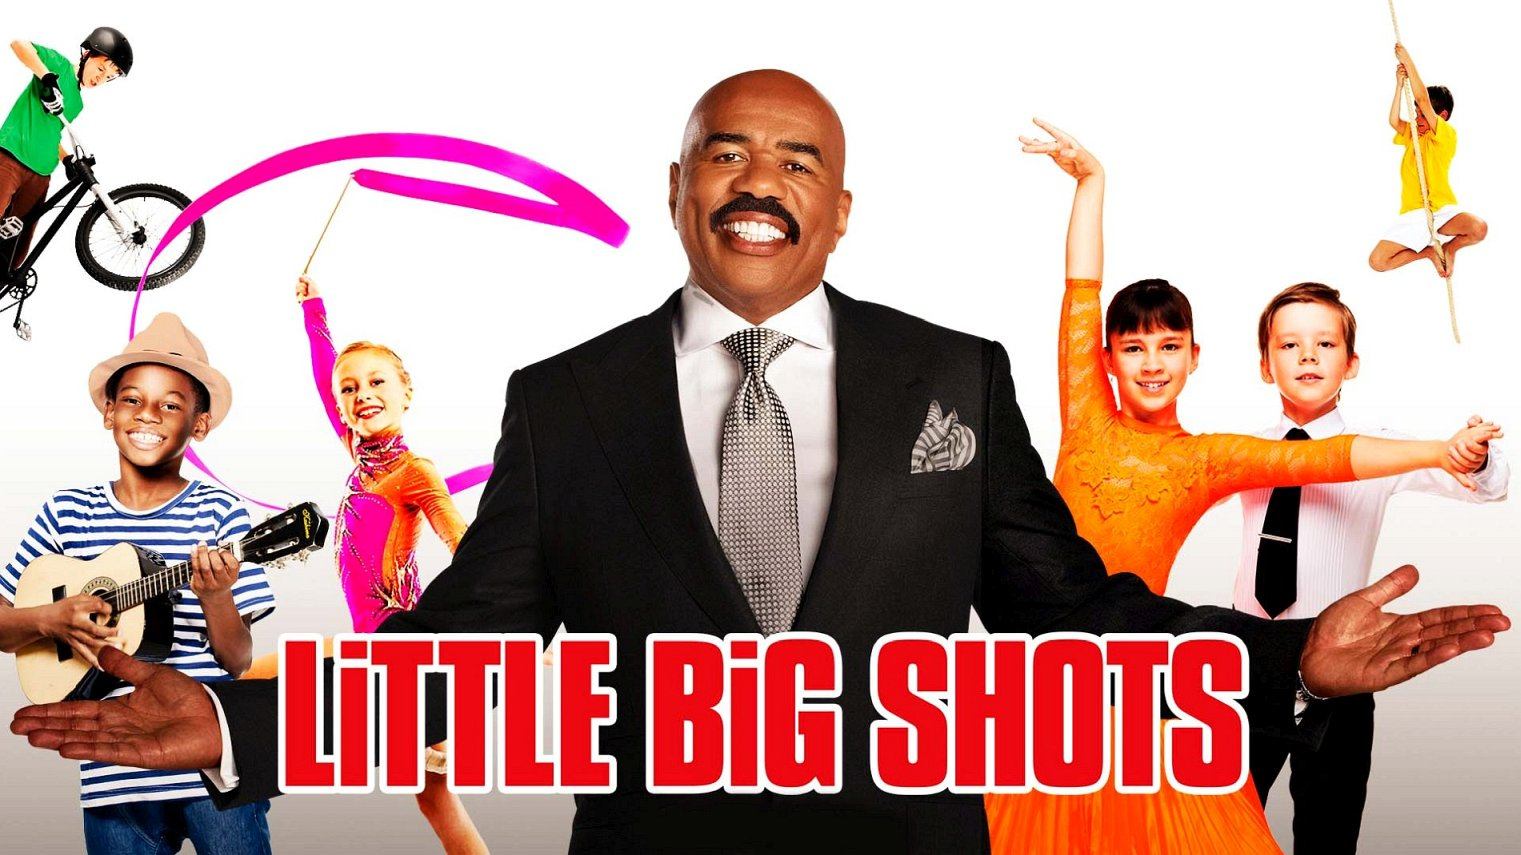 what time is Little Big Shots on